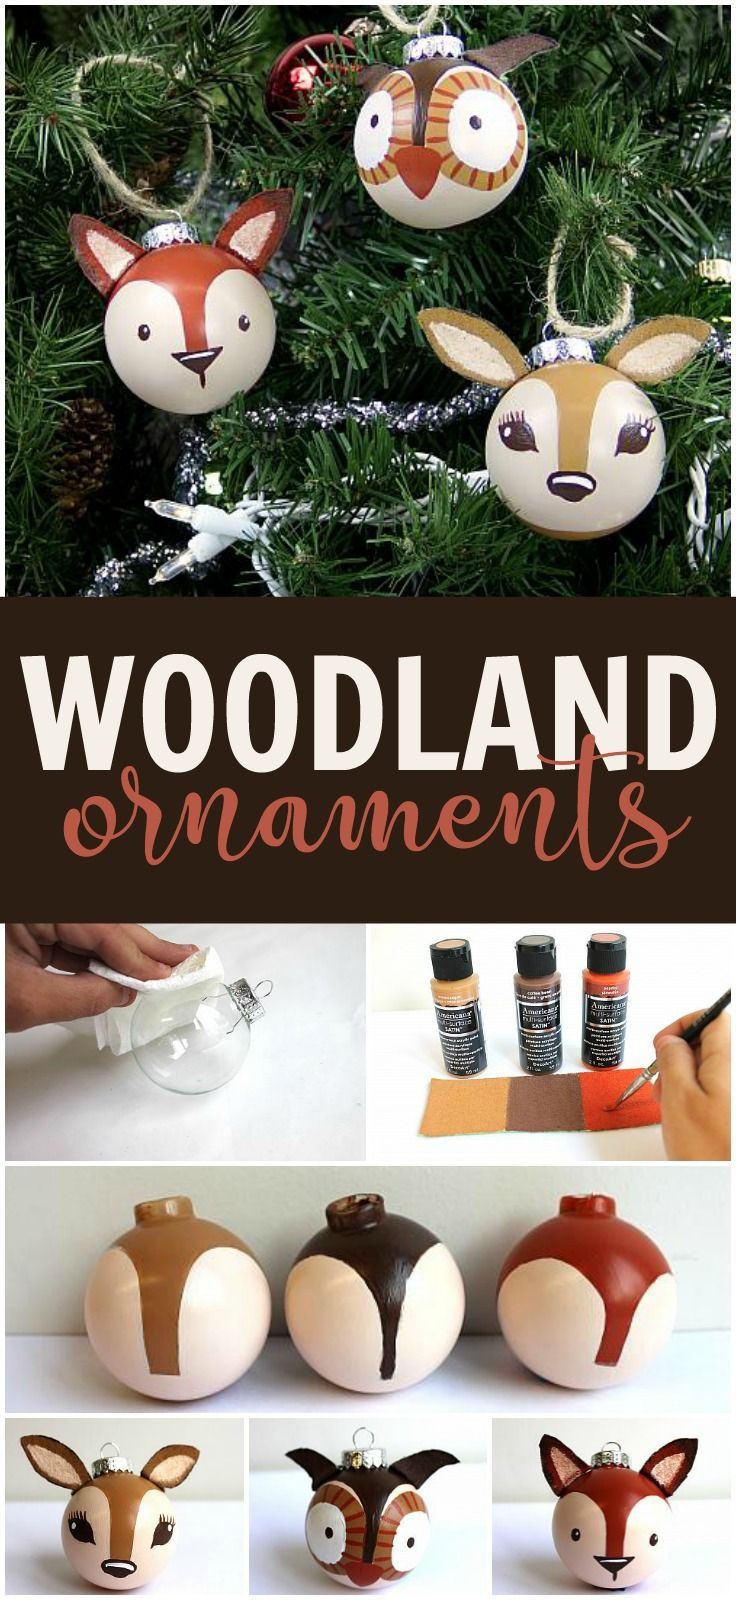 Bottle brush woodland animals - Turn A Plain Round Ornament Into A Cute Woodland Creature Easily With Americana Multi